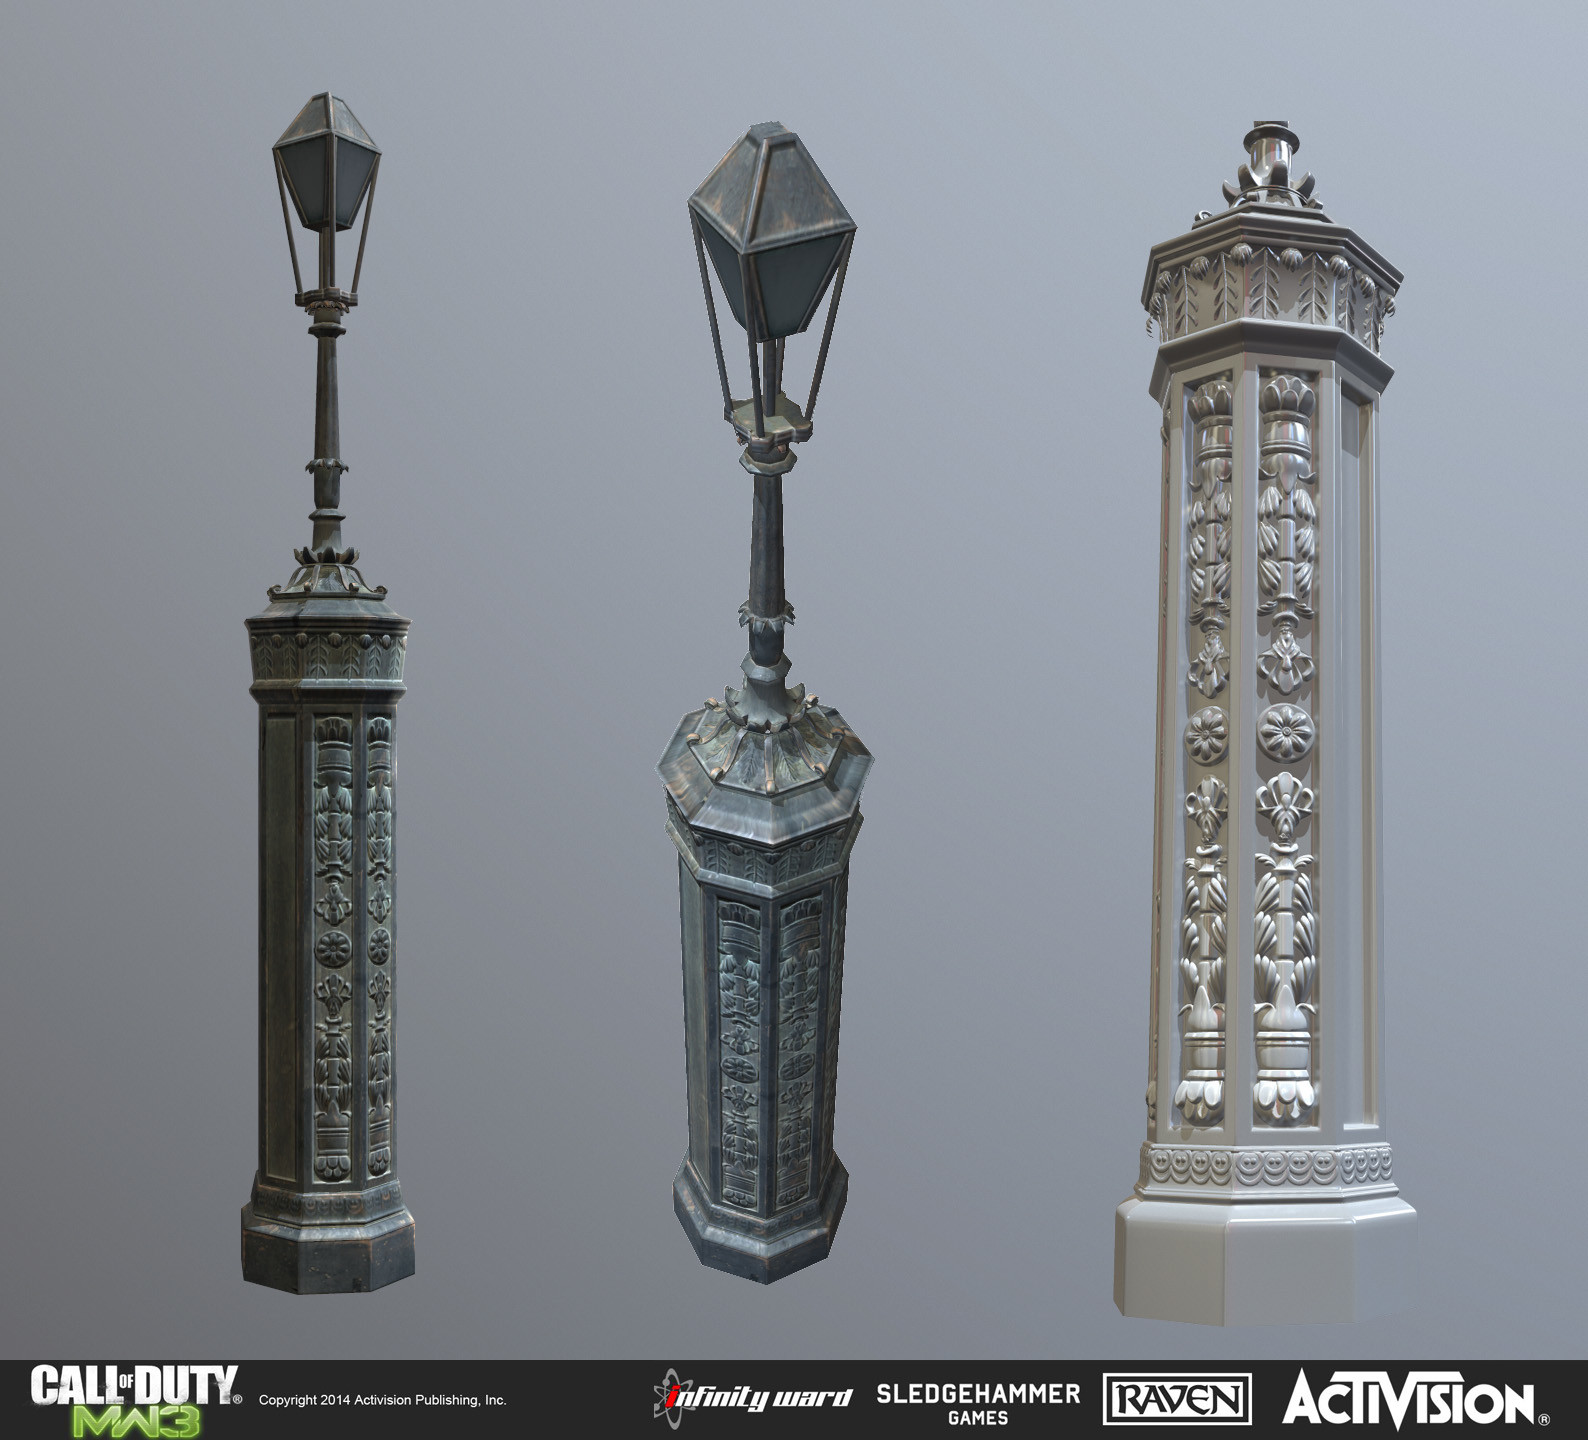 Lamp asset created for the multiplayer map Parish.